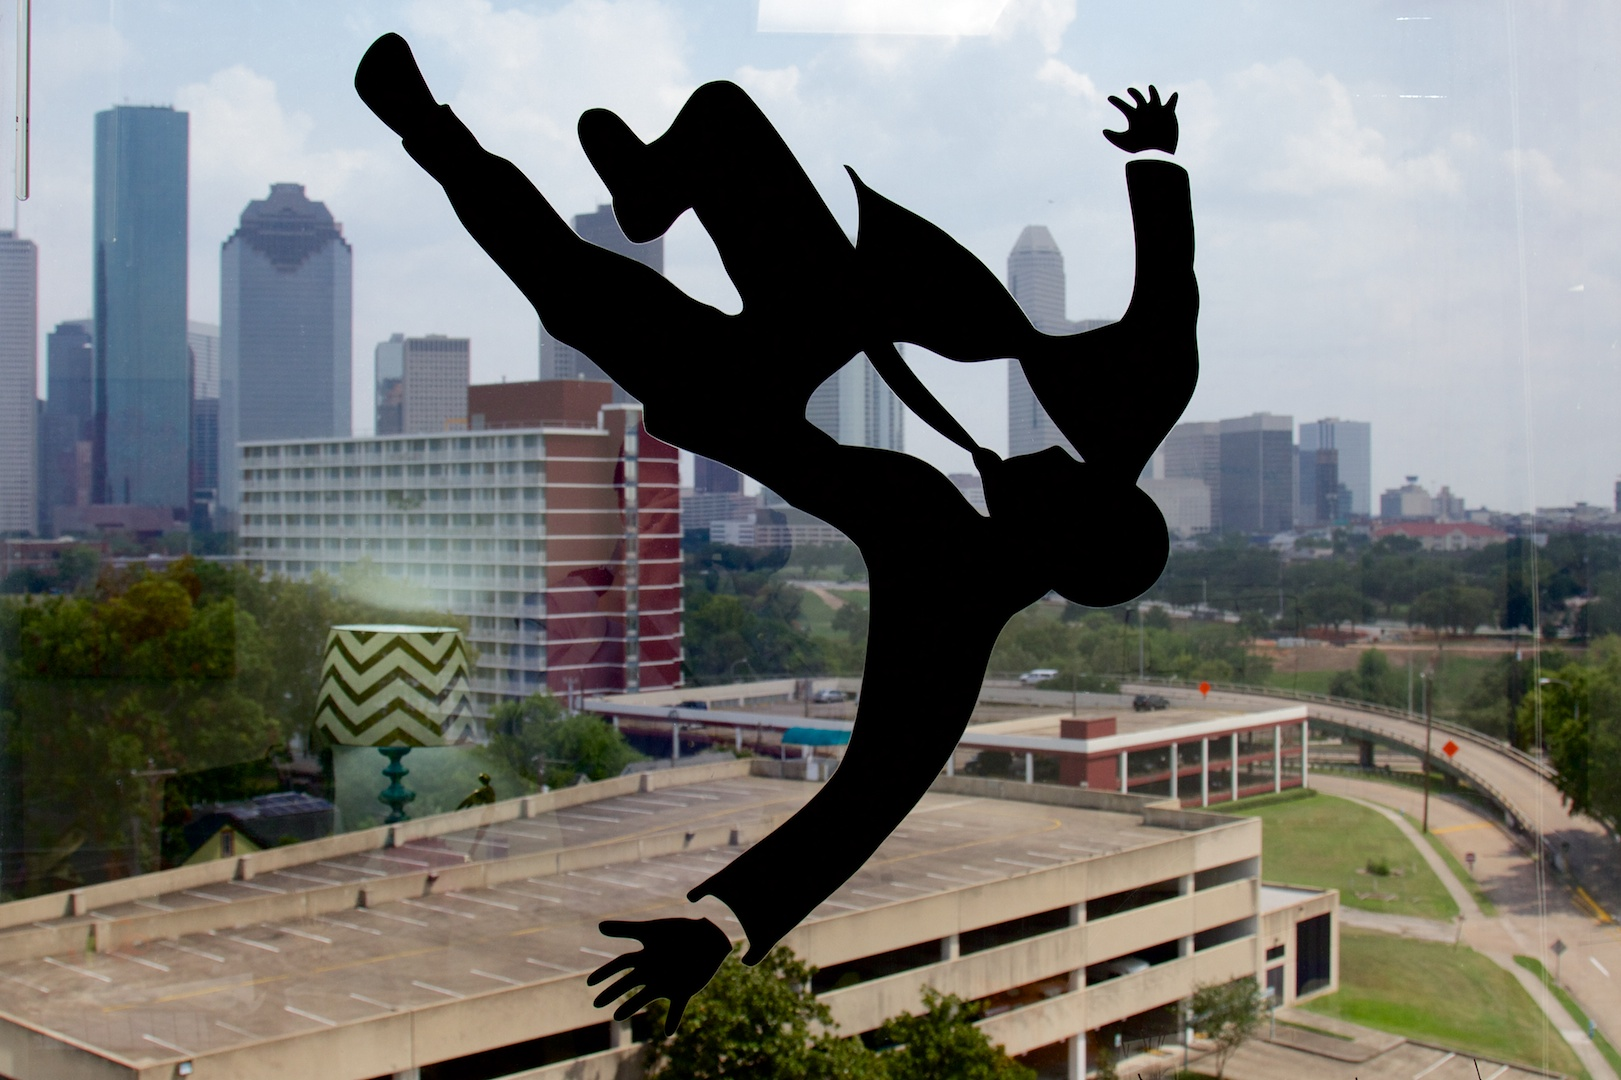 The SnapStream offices near downtown Houston are filled with neat TV memorabilia. Marketing director Rachel Eichenbaum's office, for example, features a <em>Mad Men</em> silhouette falling down against the skyline.